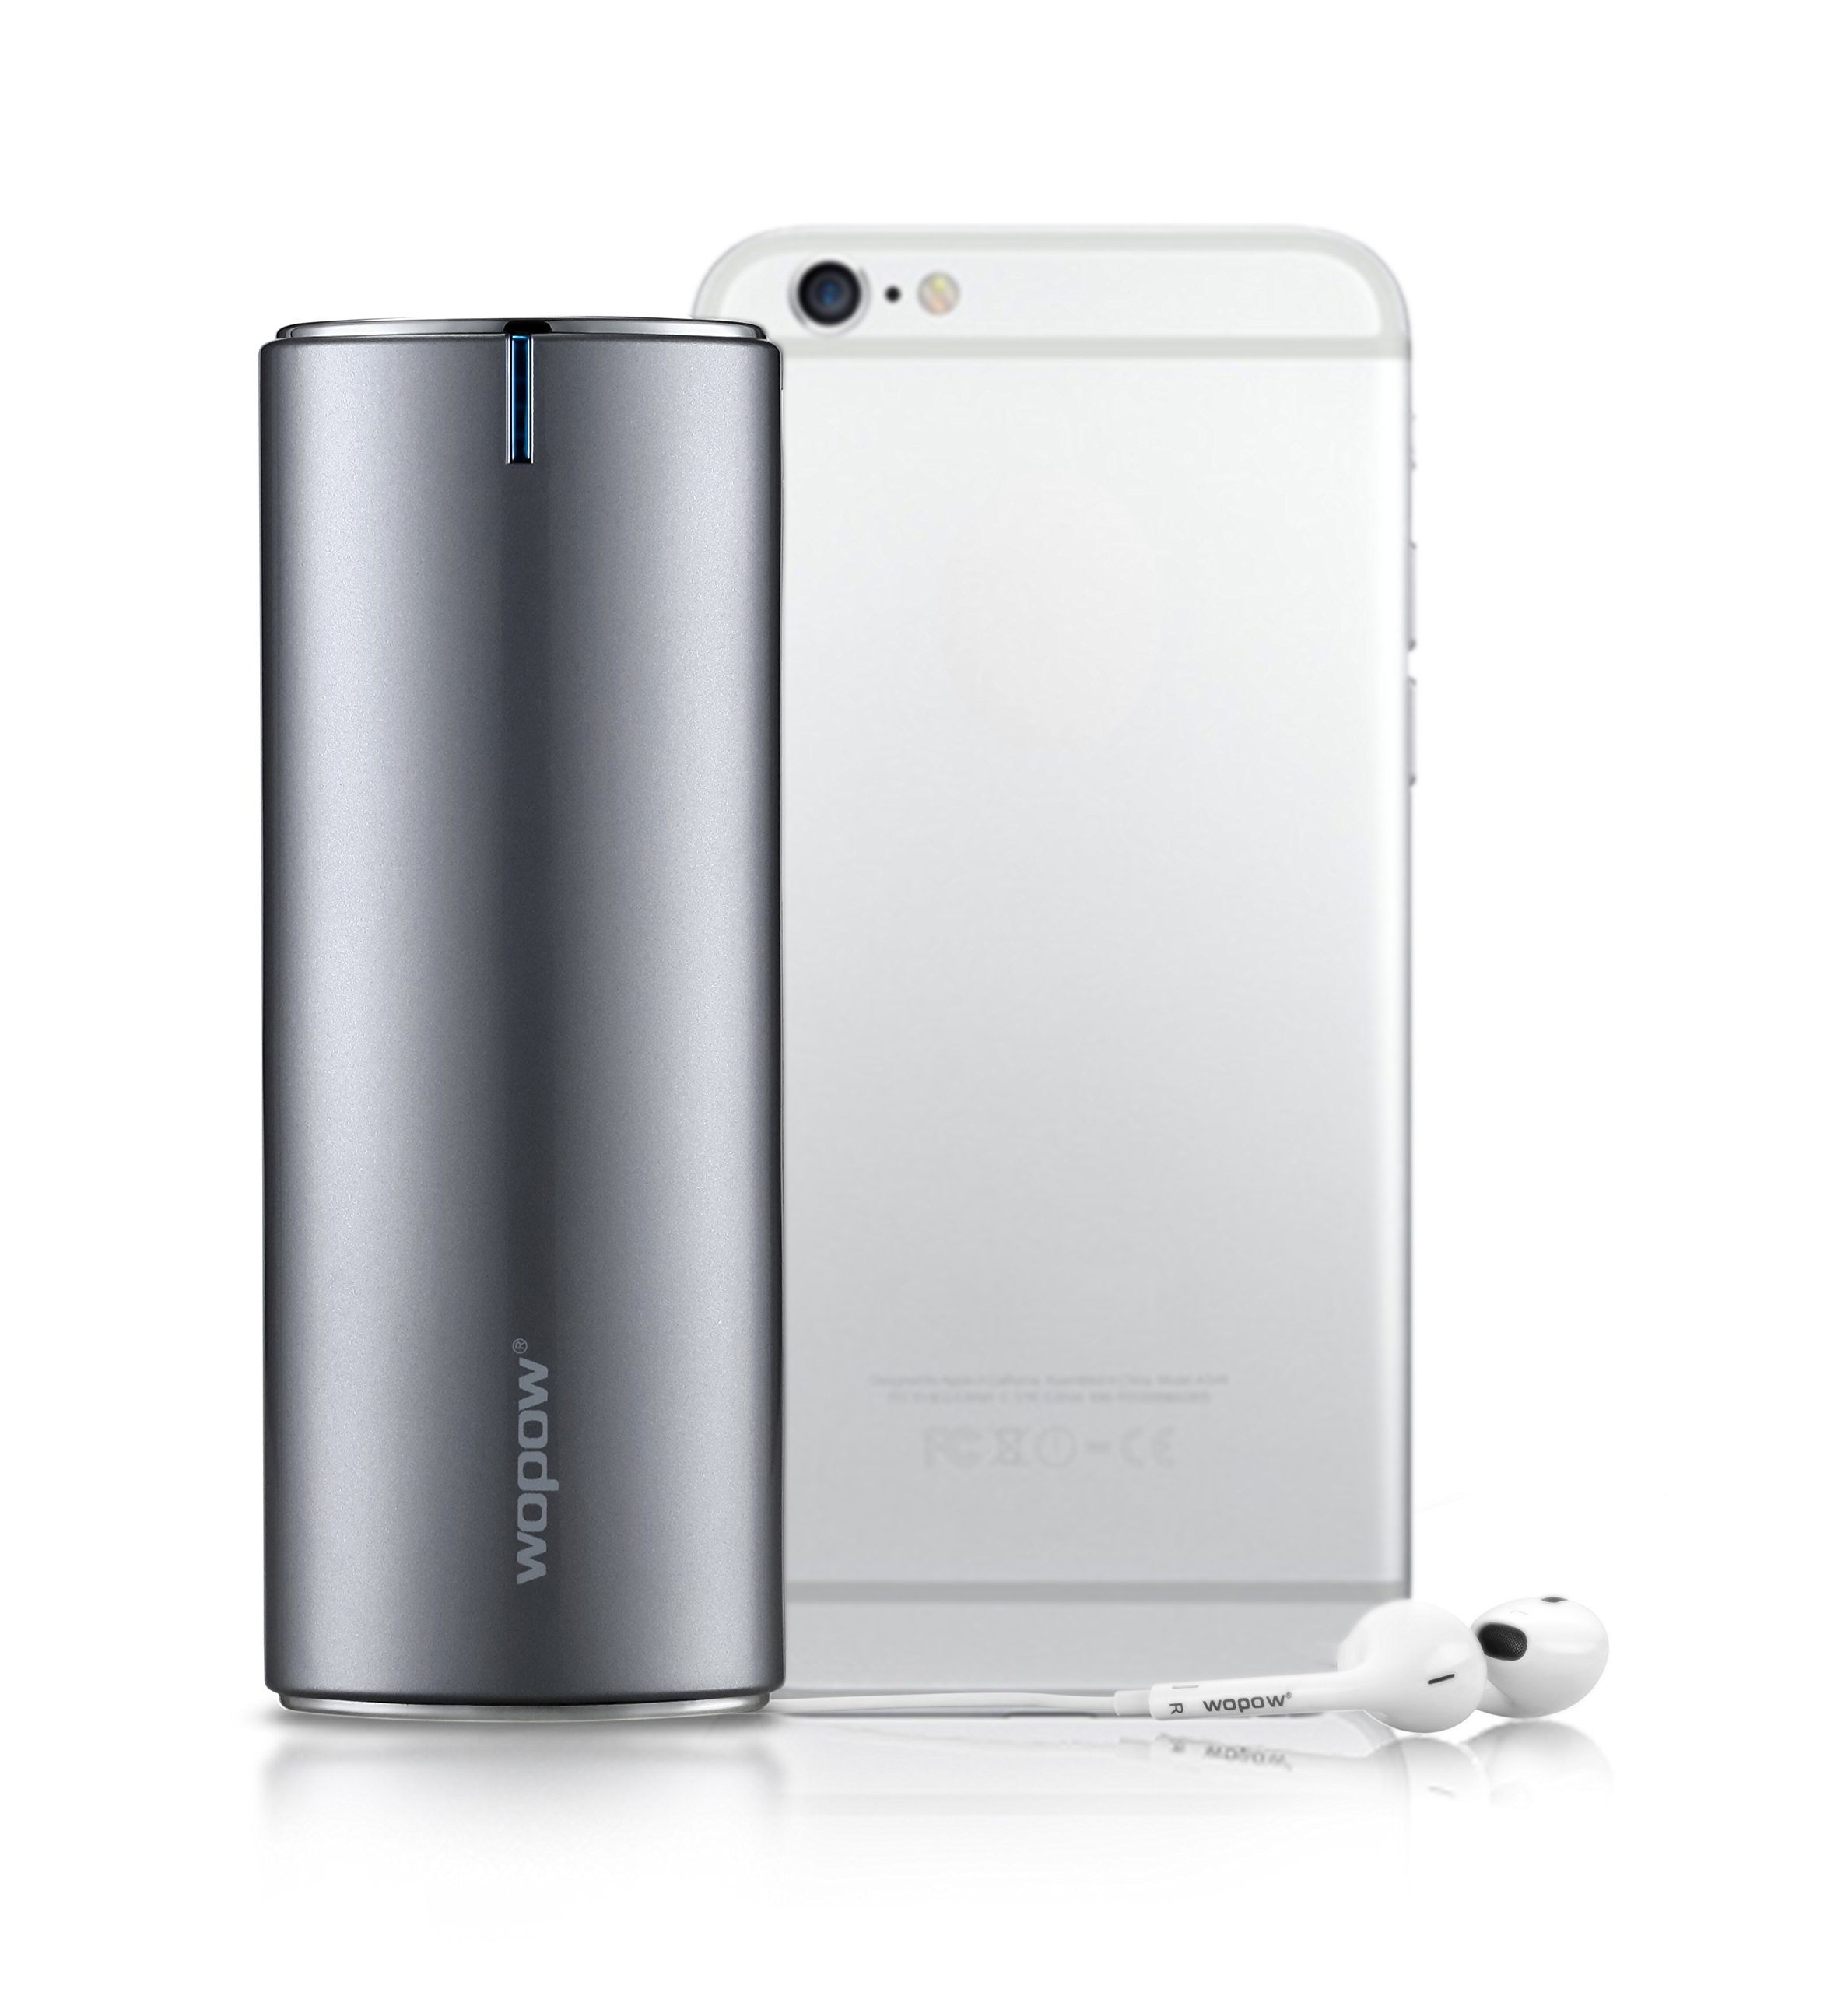 20100mah Portable Power Bank, WOPOW PD506+ LED Light External Battery Fast Charger for Samsung Galaxy